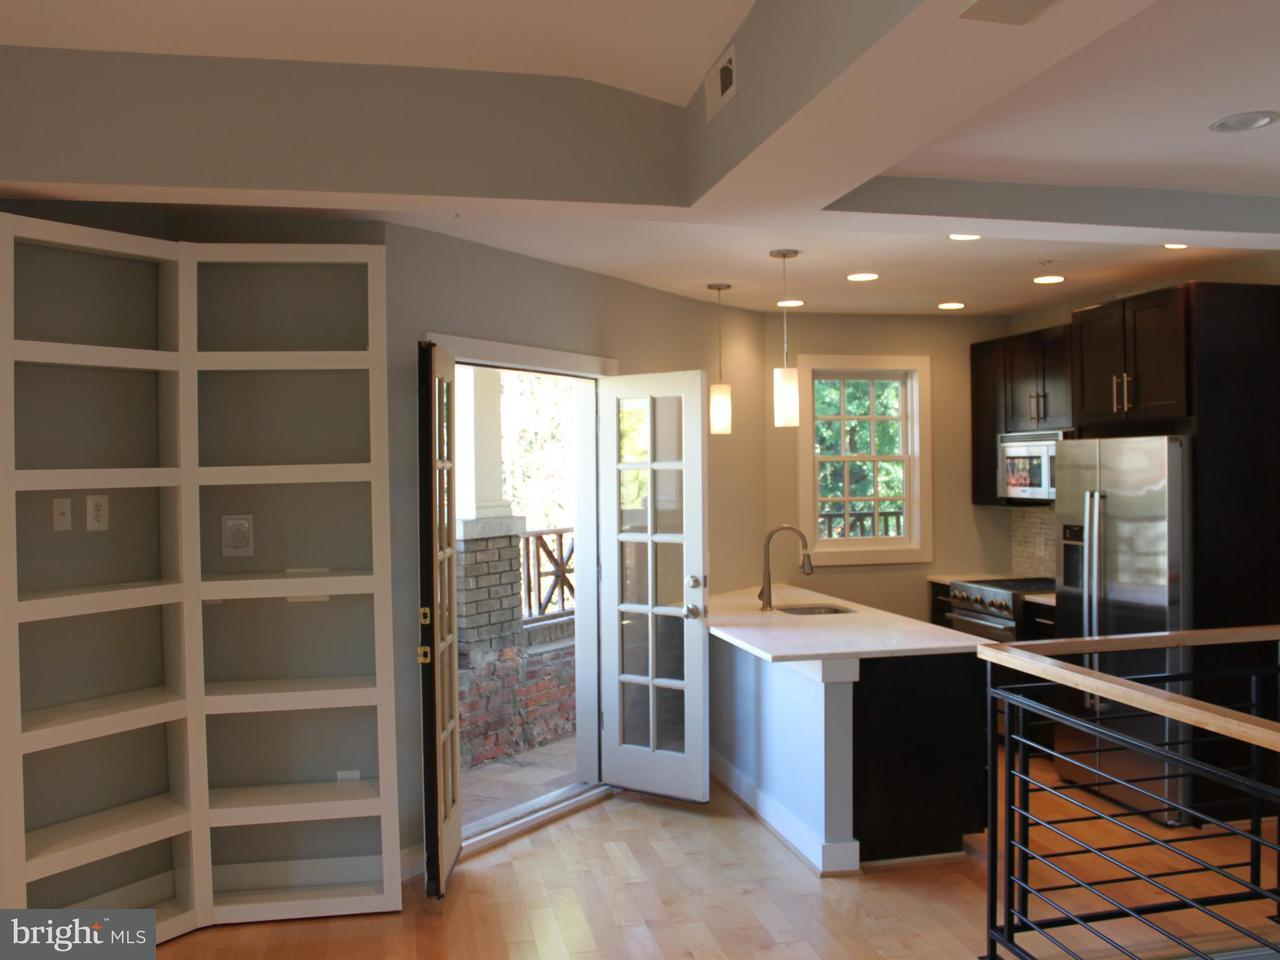 Other Residential for Rent at 2359 Ashmead Pl NW #4 Washington, District Of Columbia 20009 United States